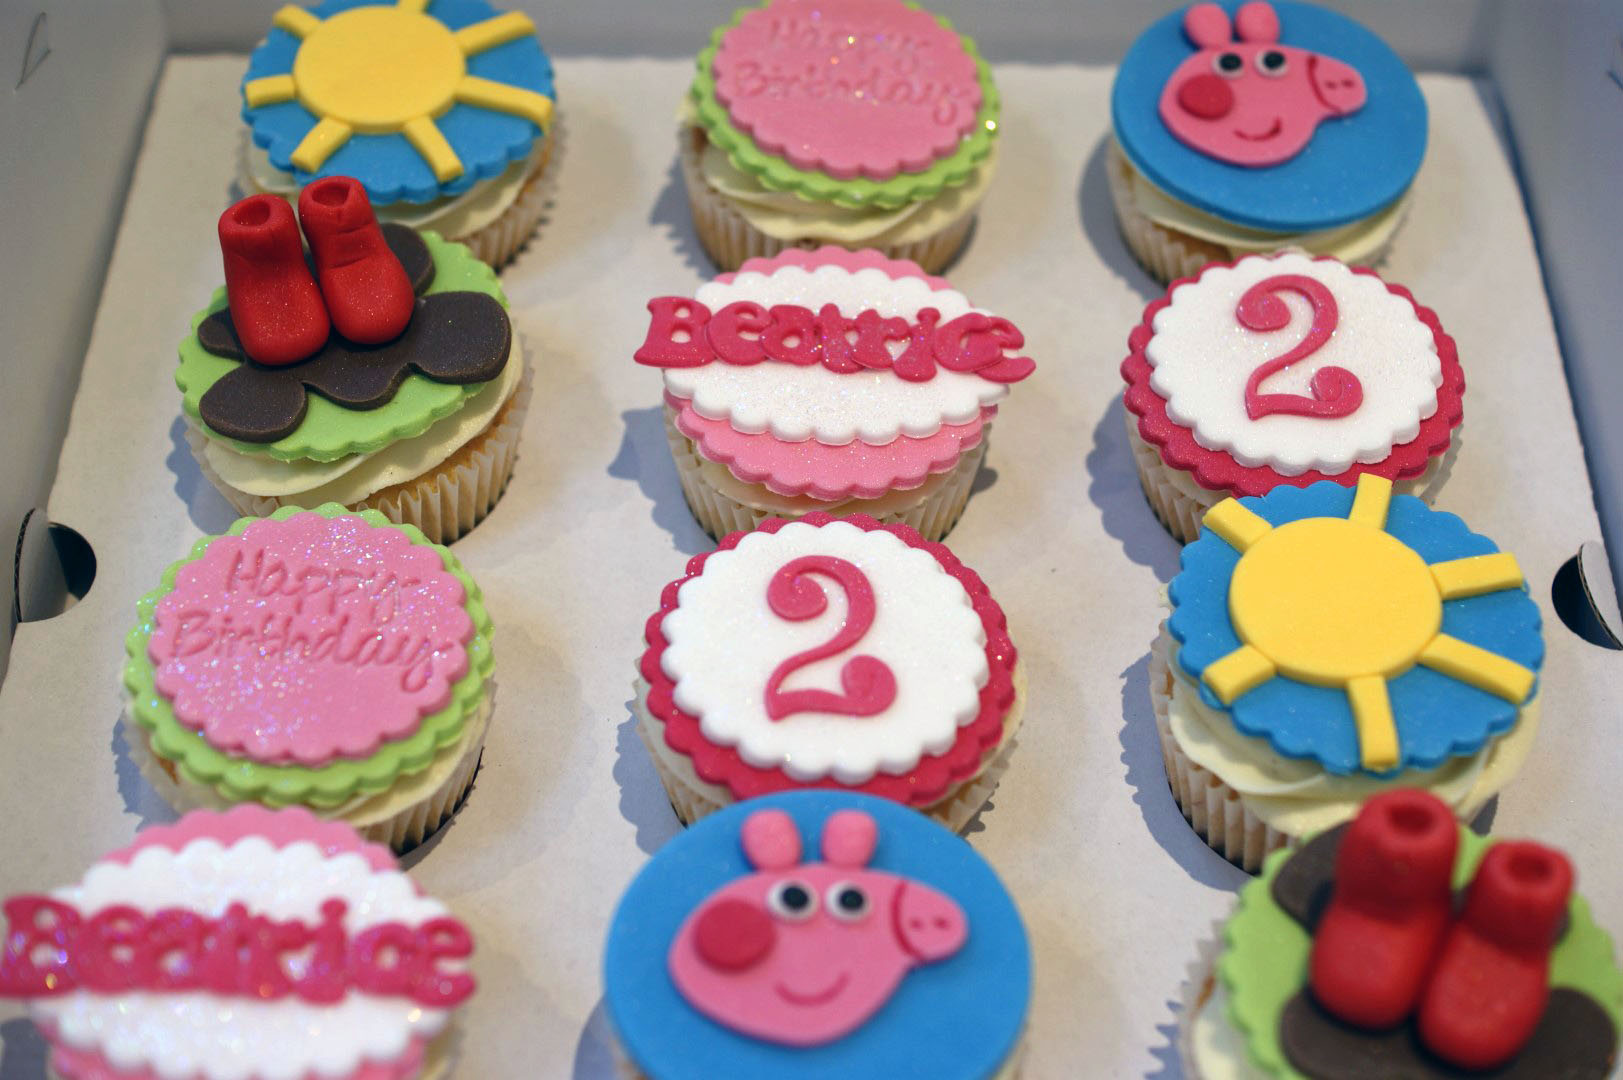 Pleasant Peppa Pig 2Nd Birthday Cake And Cupcakes 1 Bakealous Personalised Birthday Cards Paralily Jamesorg